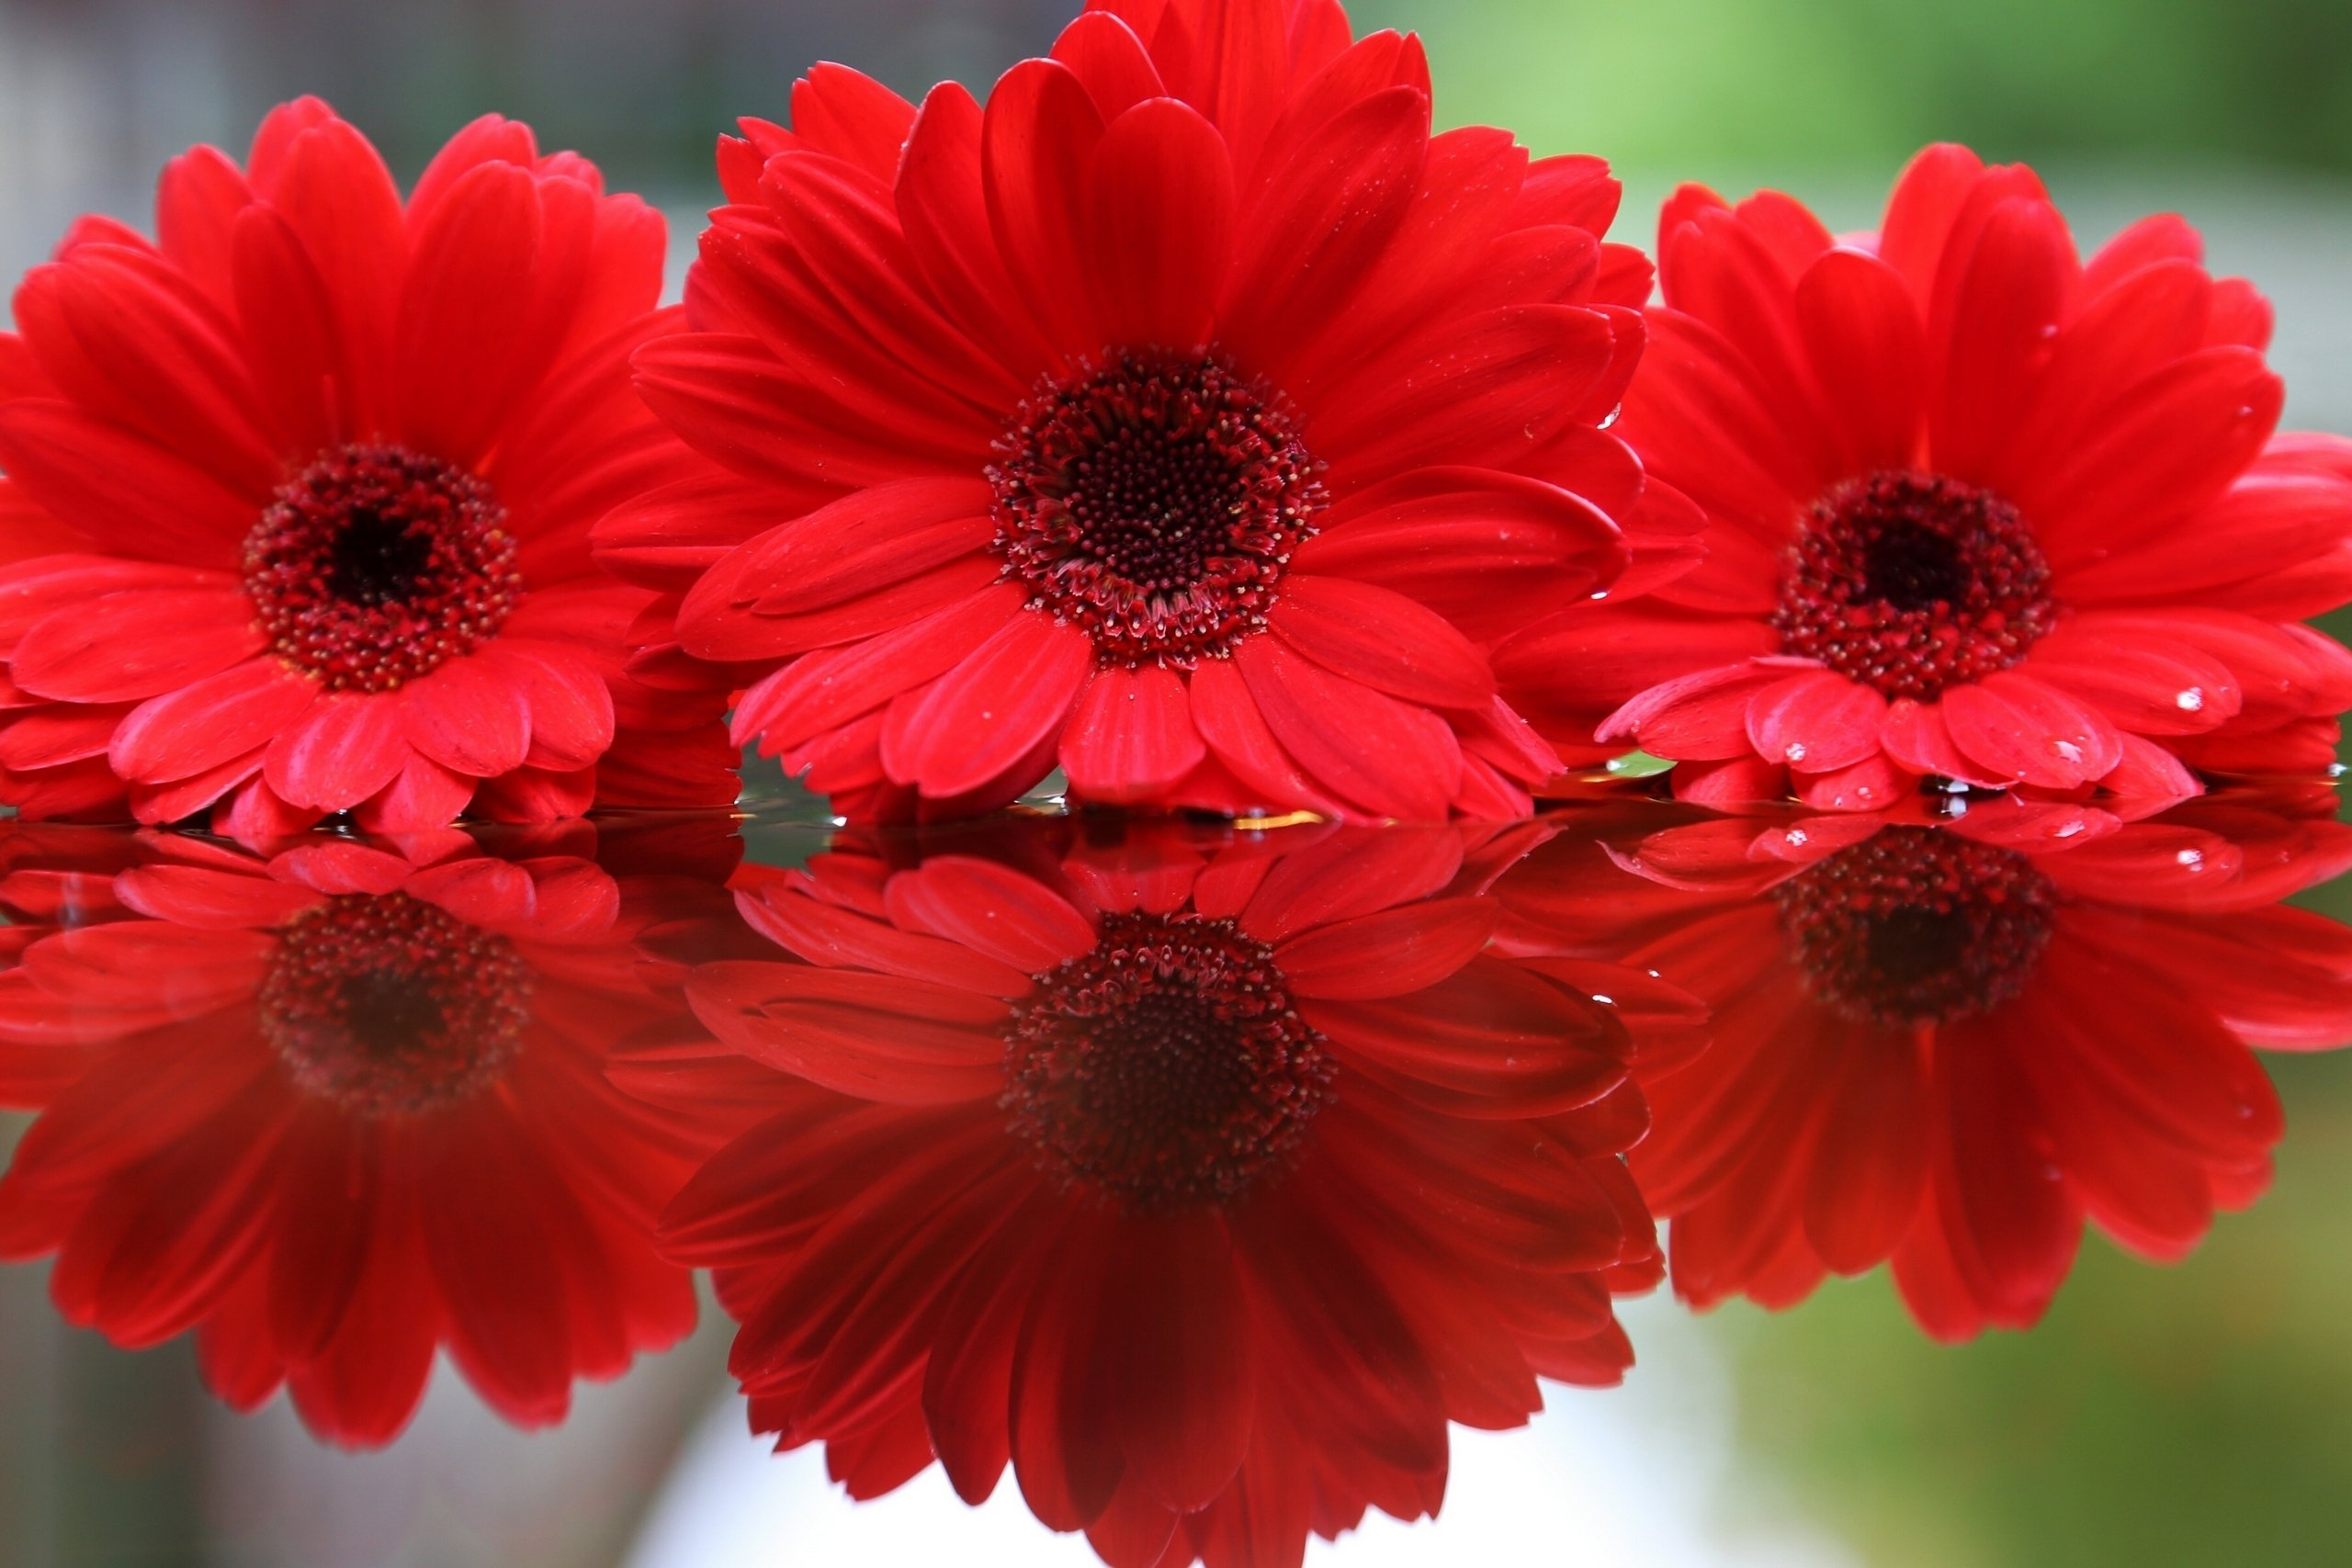 red daisy flower hd - photo #29